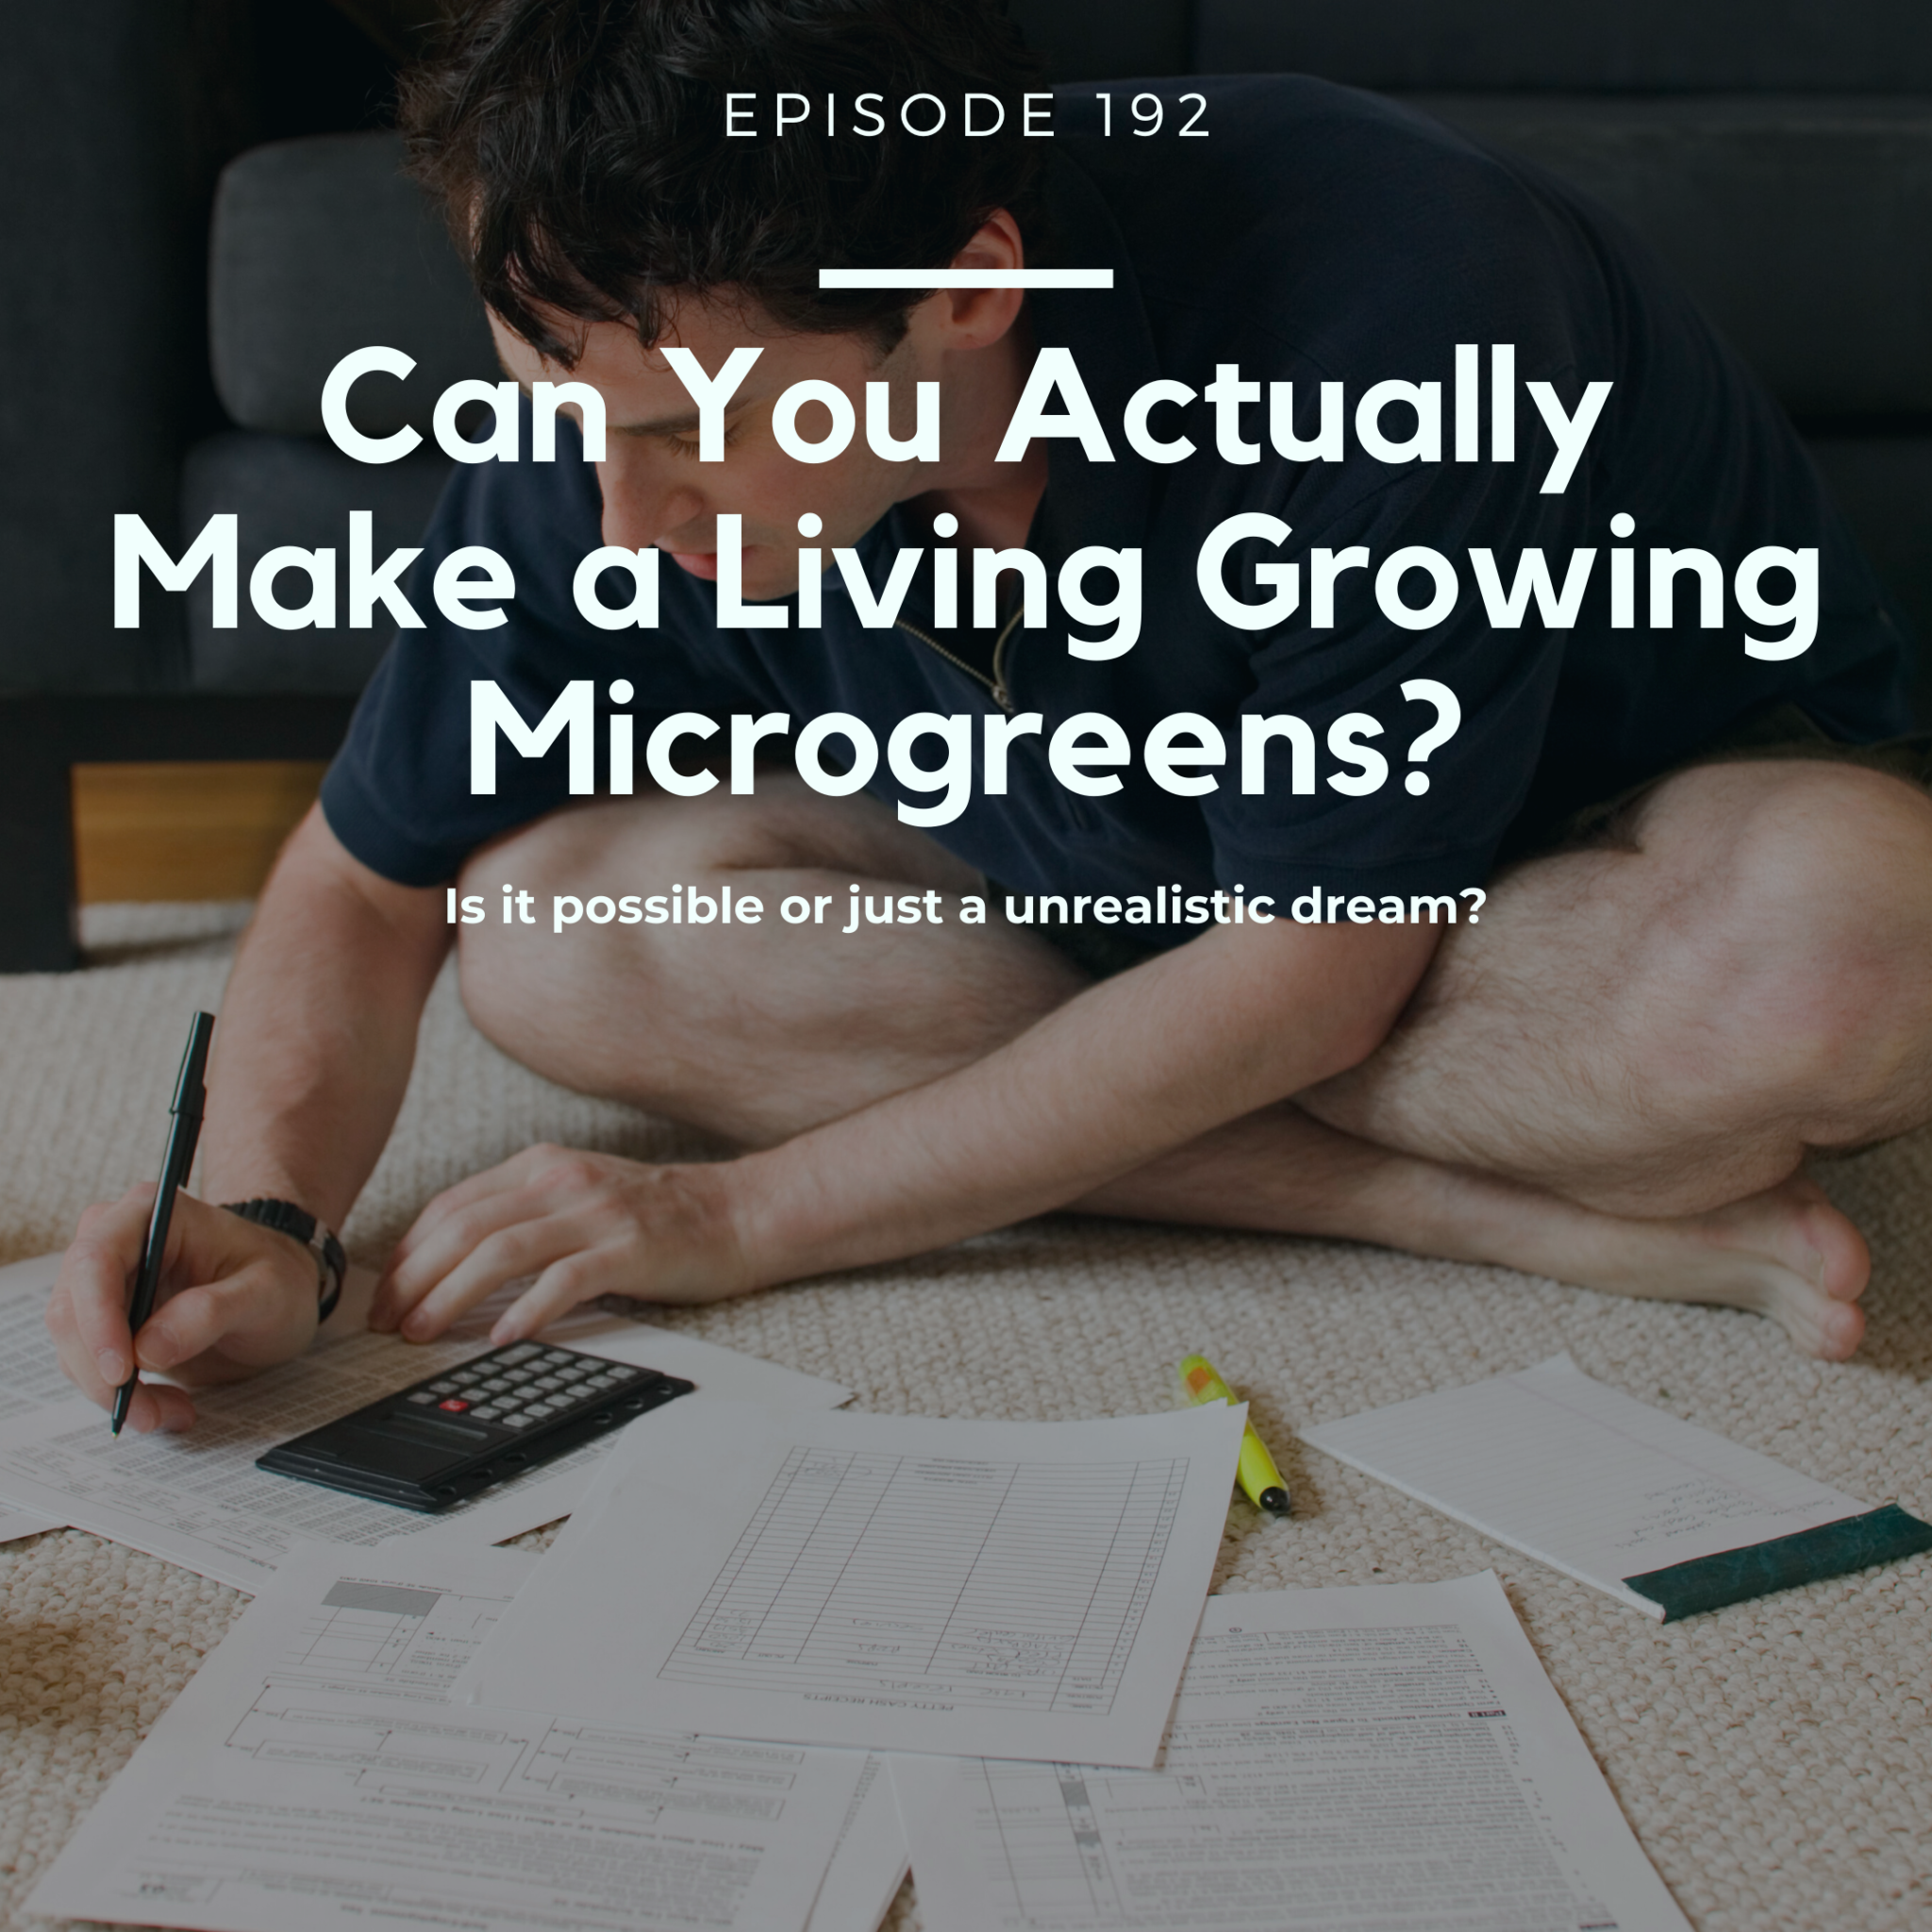 Farm Podcast Growing Microgreens